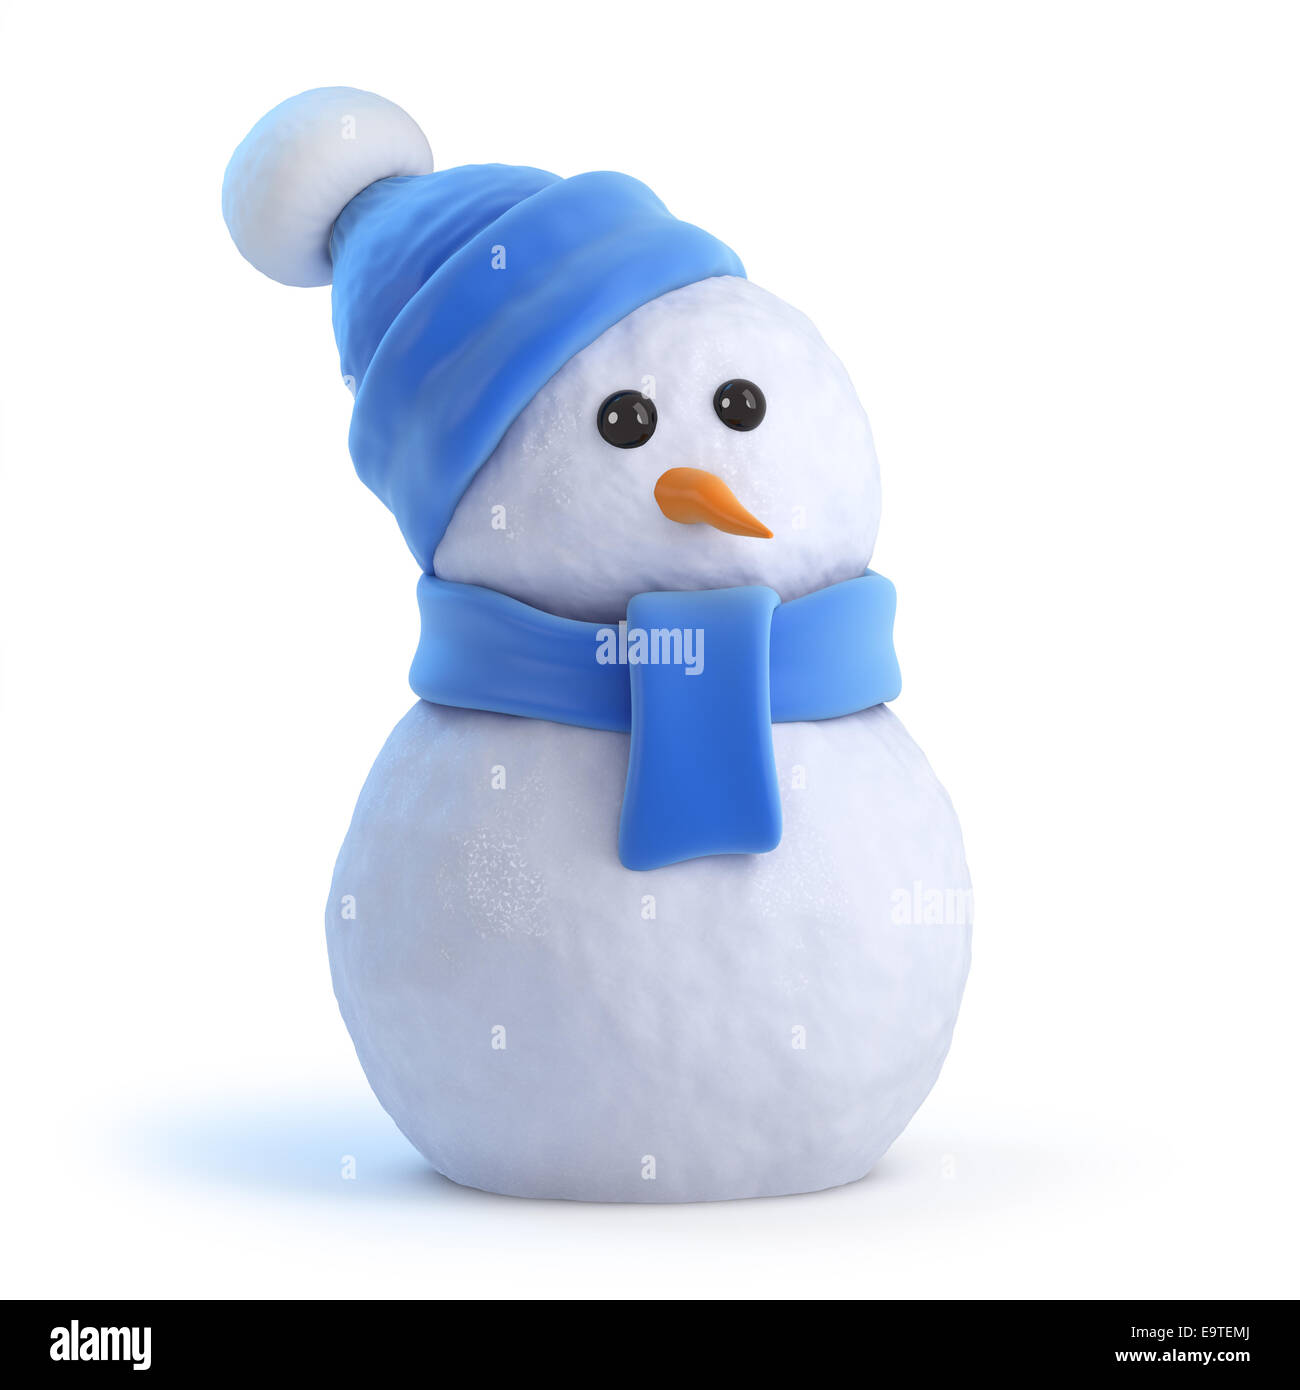 3d render of a snowman wearing a blue woolen hat and scarf stock